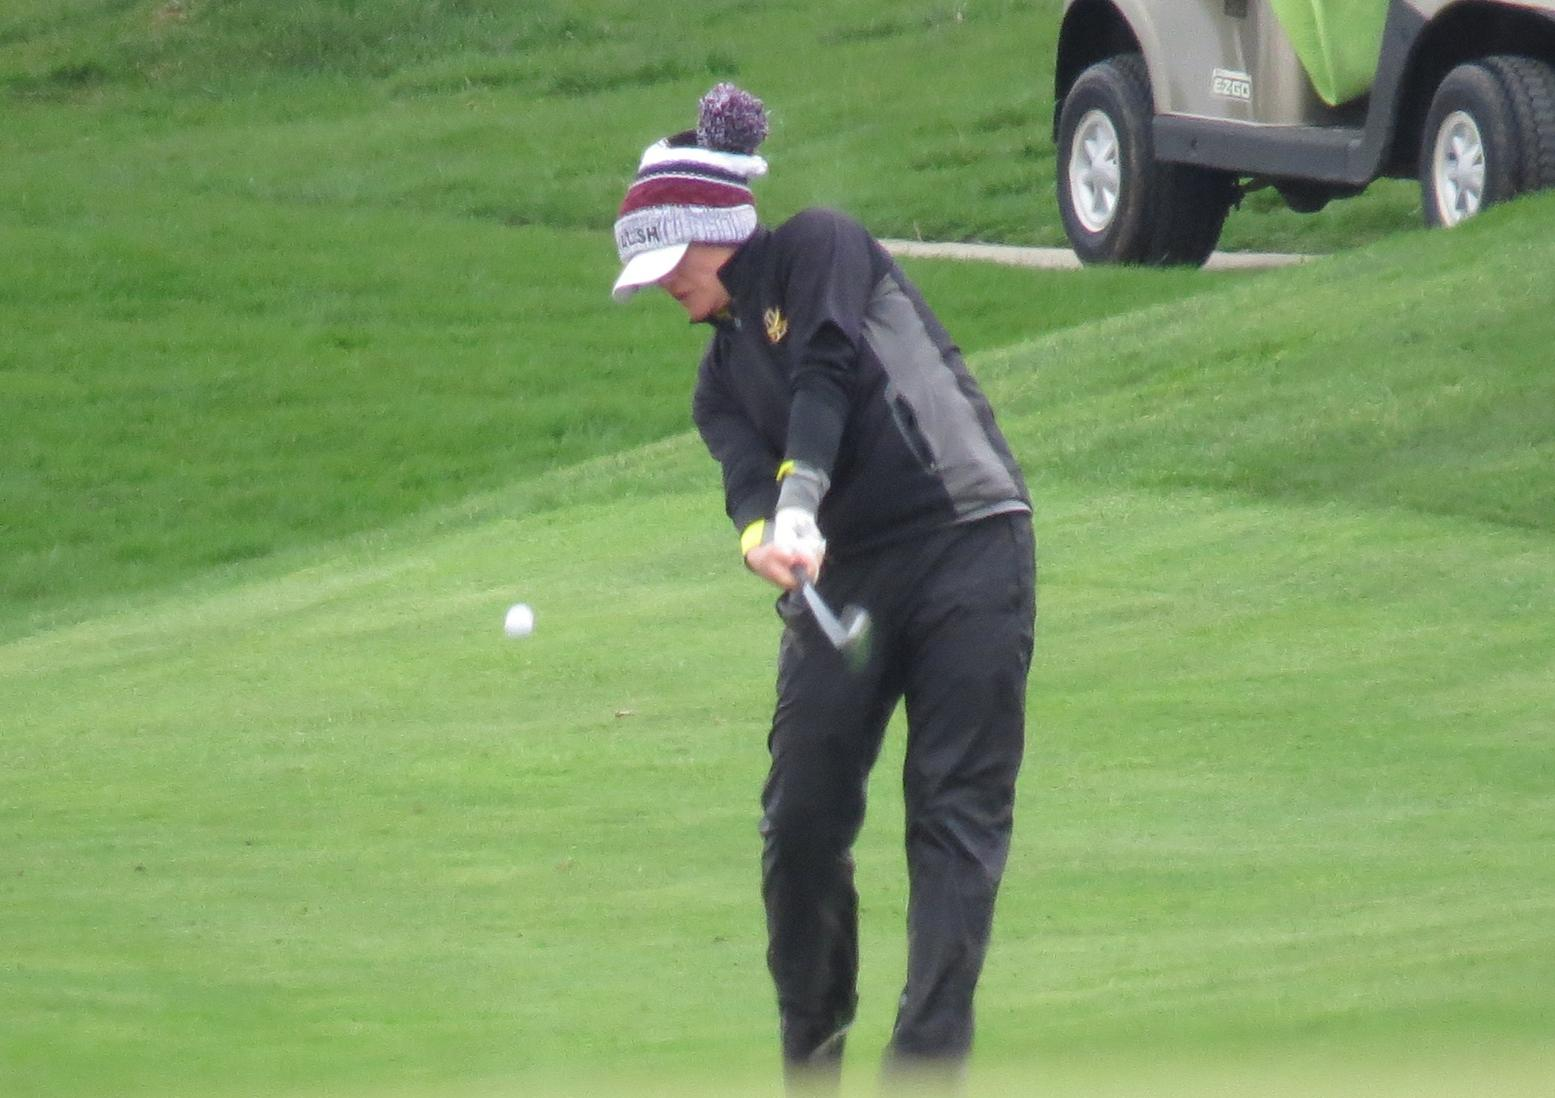 Walsh Finishes Fourth At G-MAC Championships